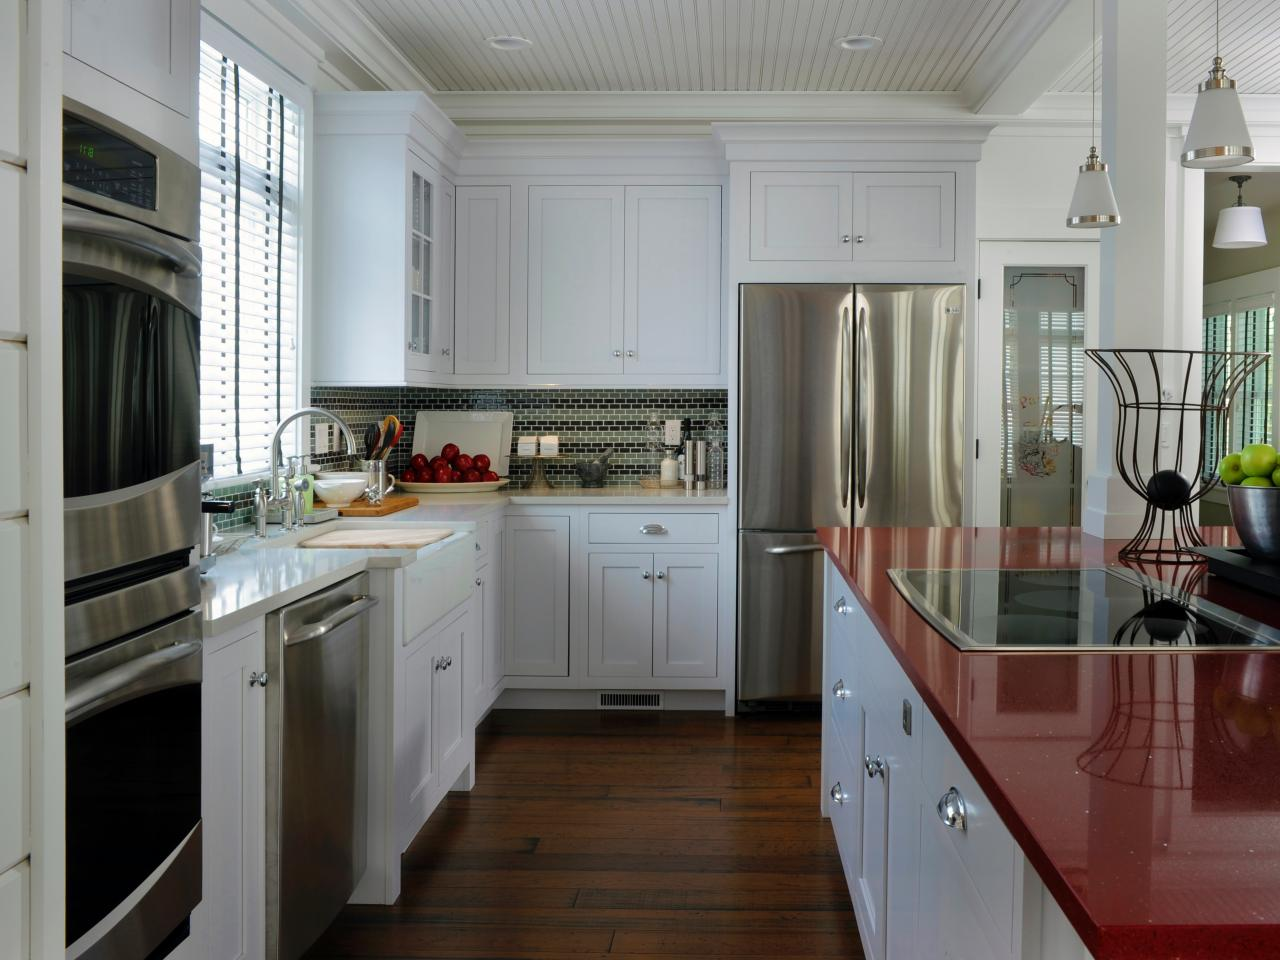 Warm Paint Colors For Kitchens Pictures Ideas From Hgtv: 15 Stunning Quartz Countertop Colors To Gather Inspiration